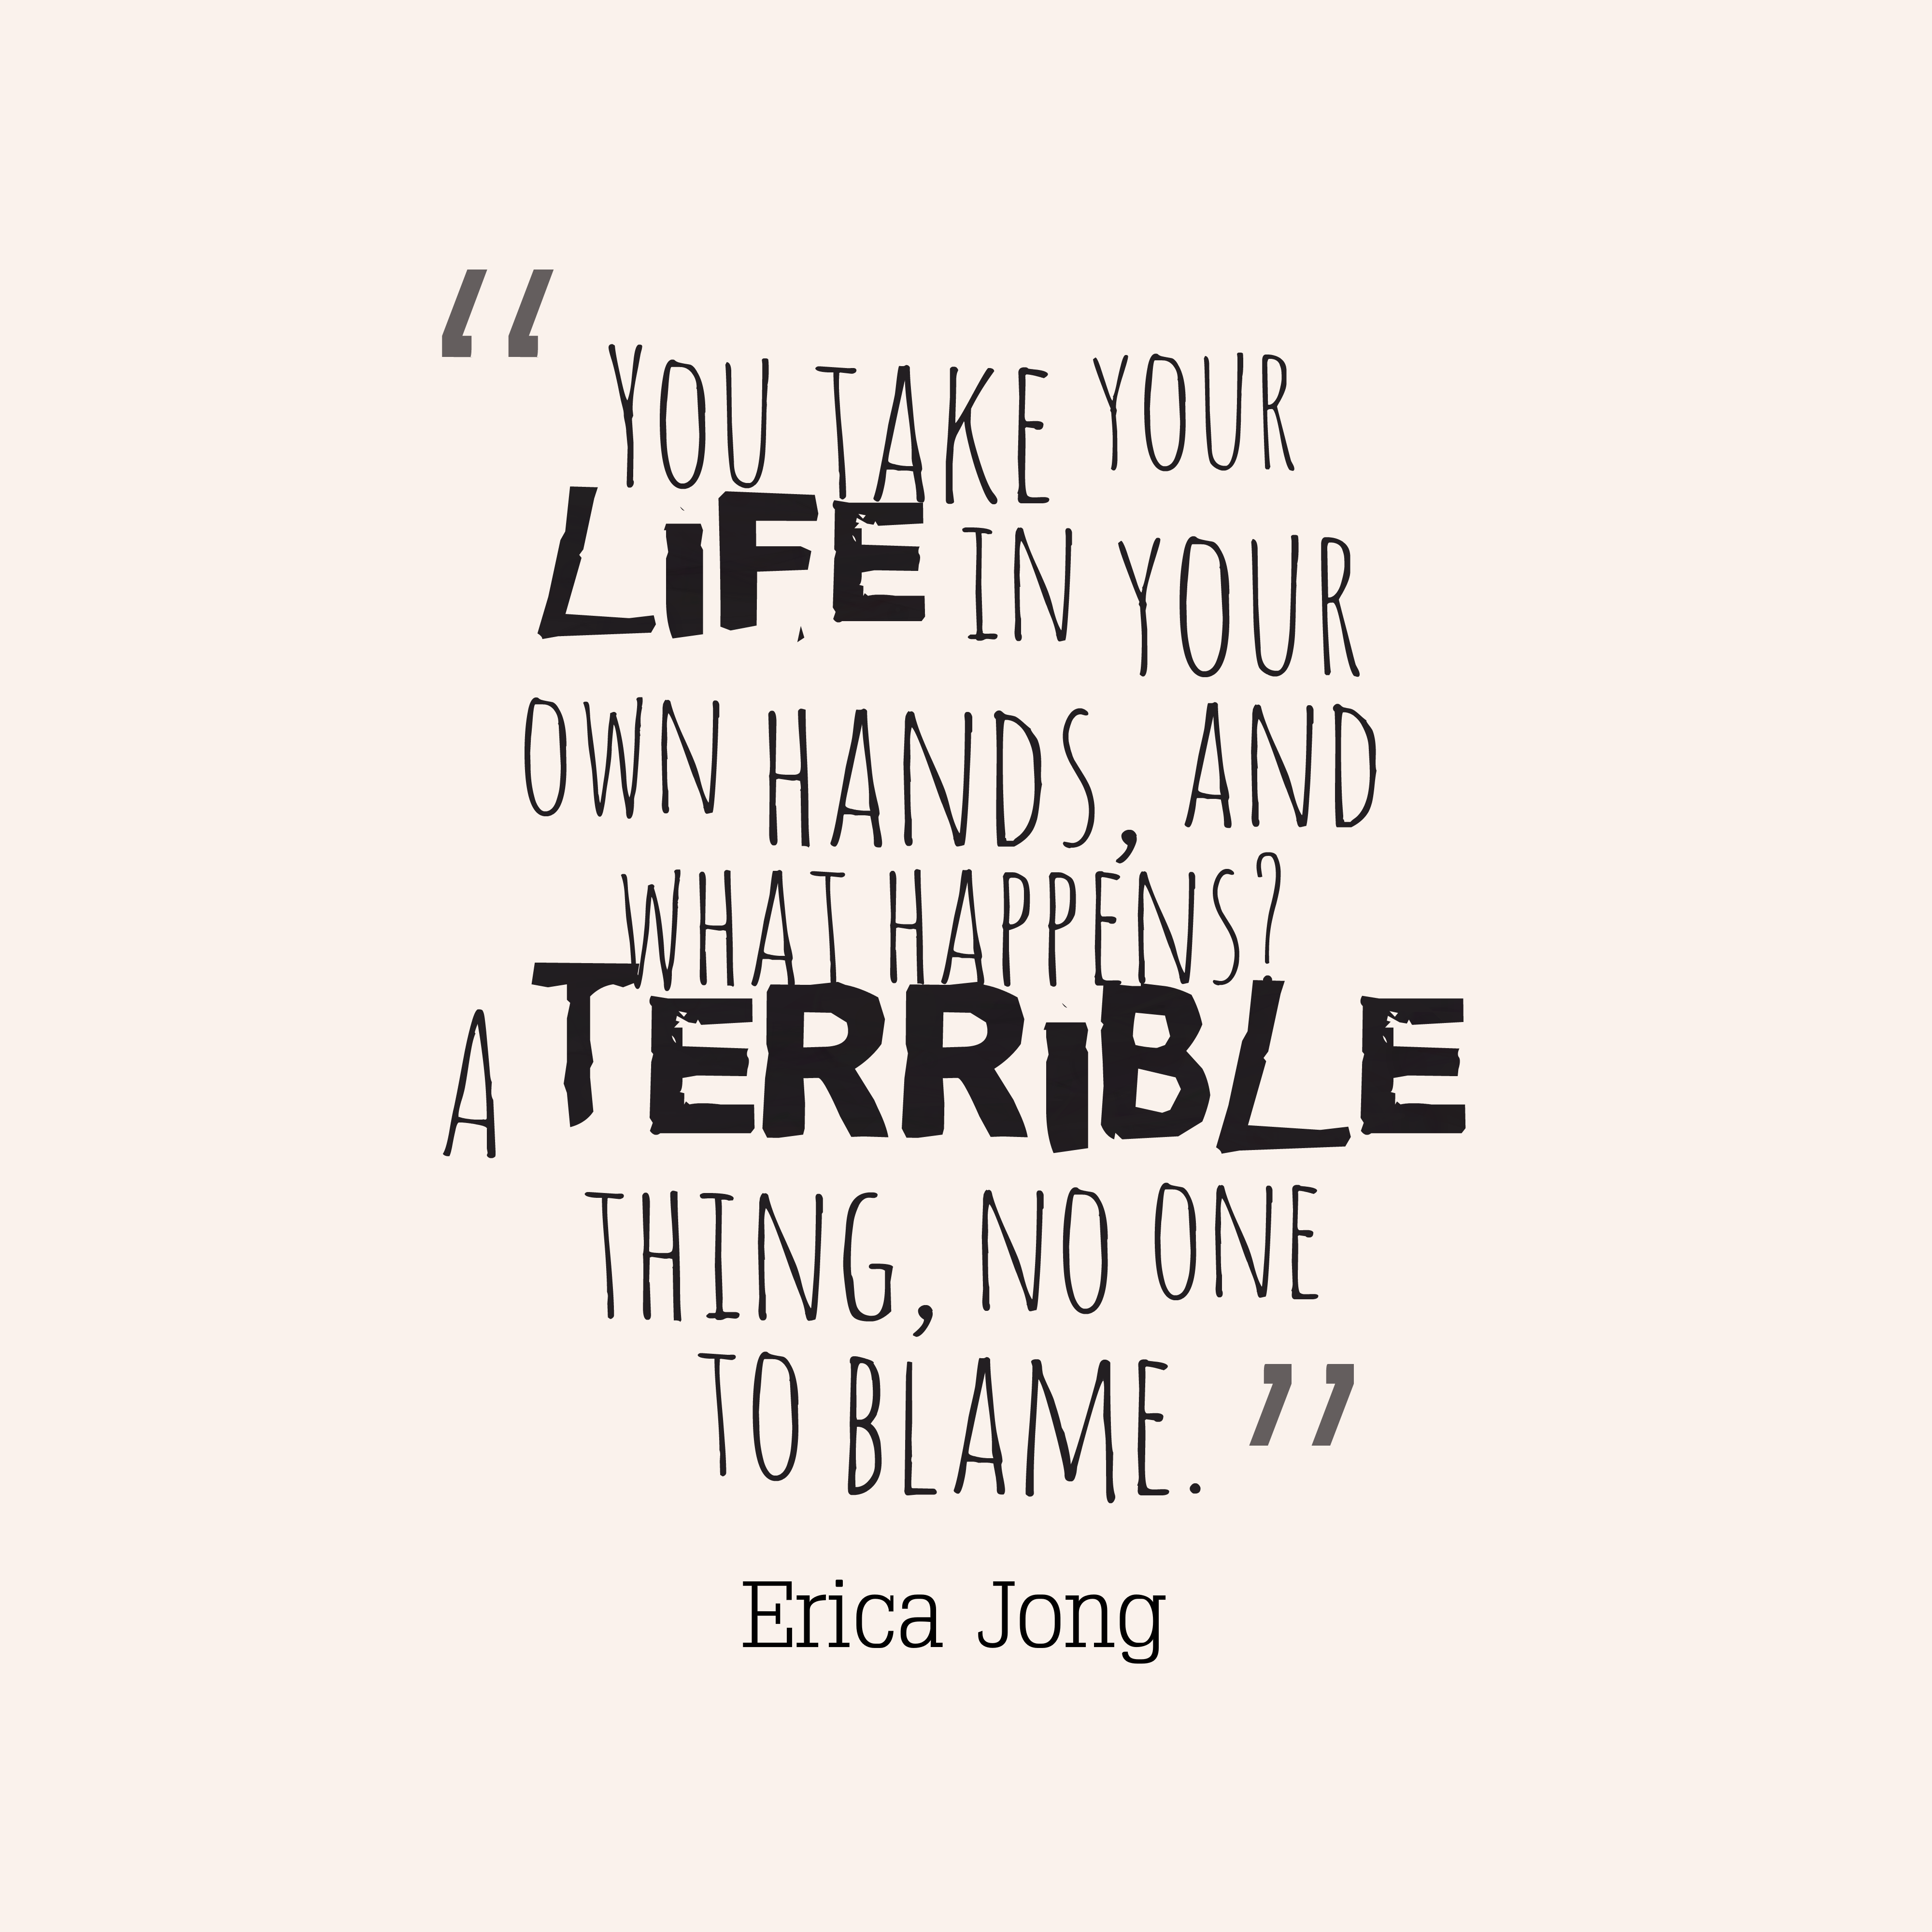 Quotes image of You take your life in your own hands, and what happens? A terrible thing, no one to blame.